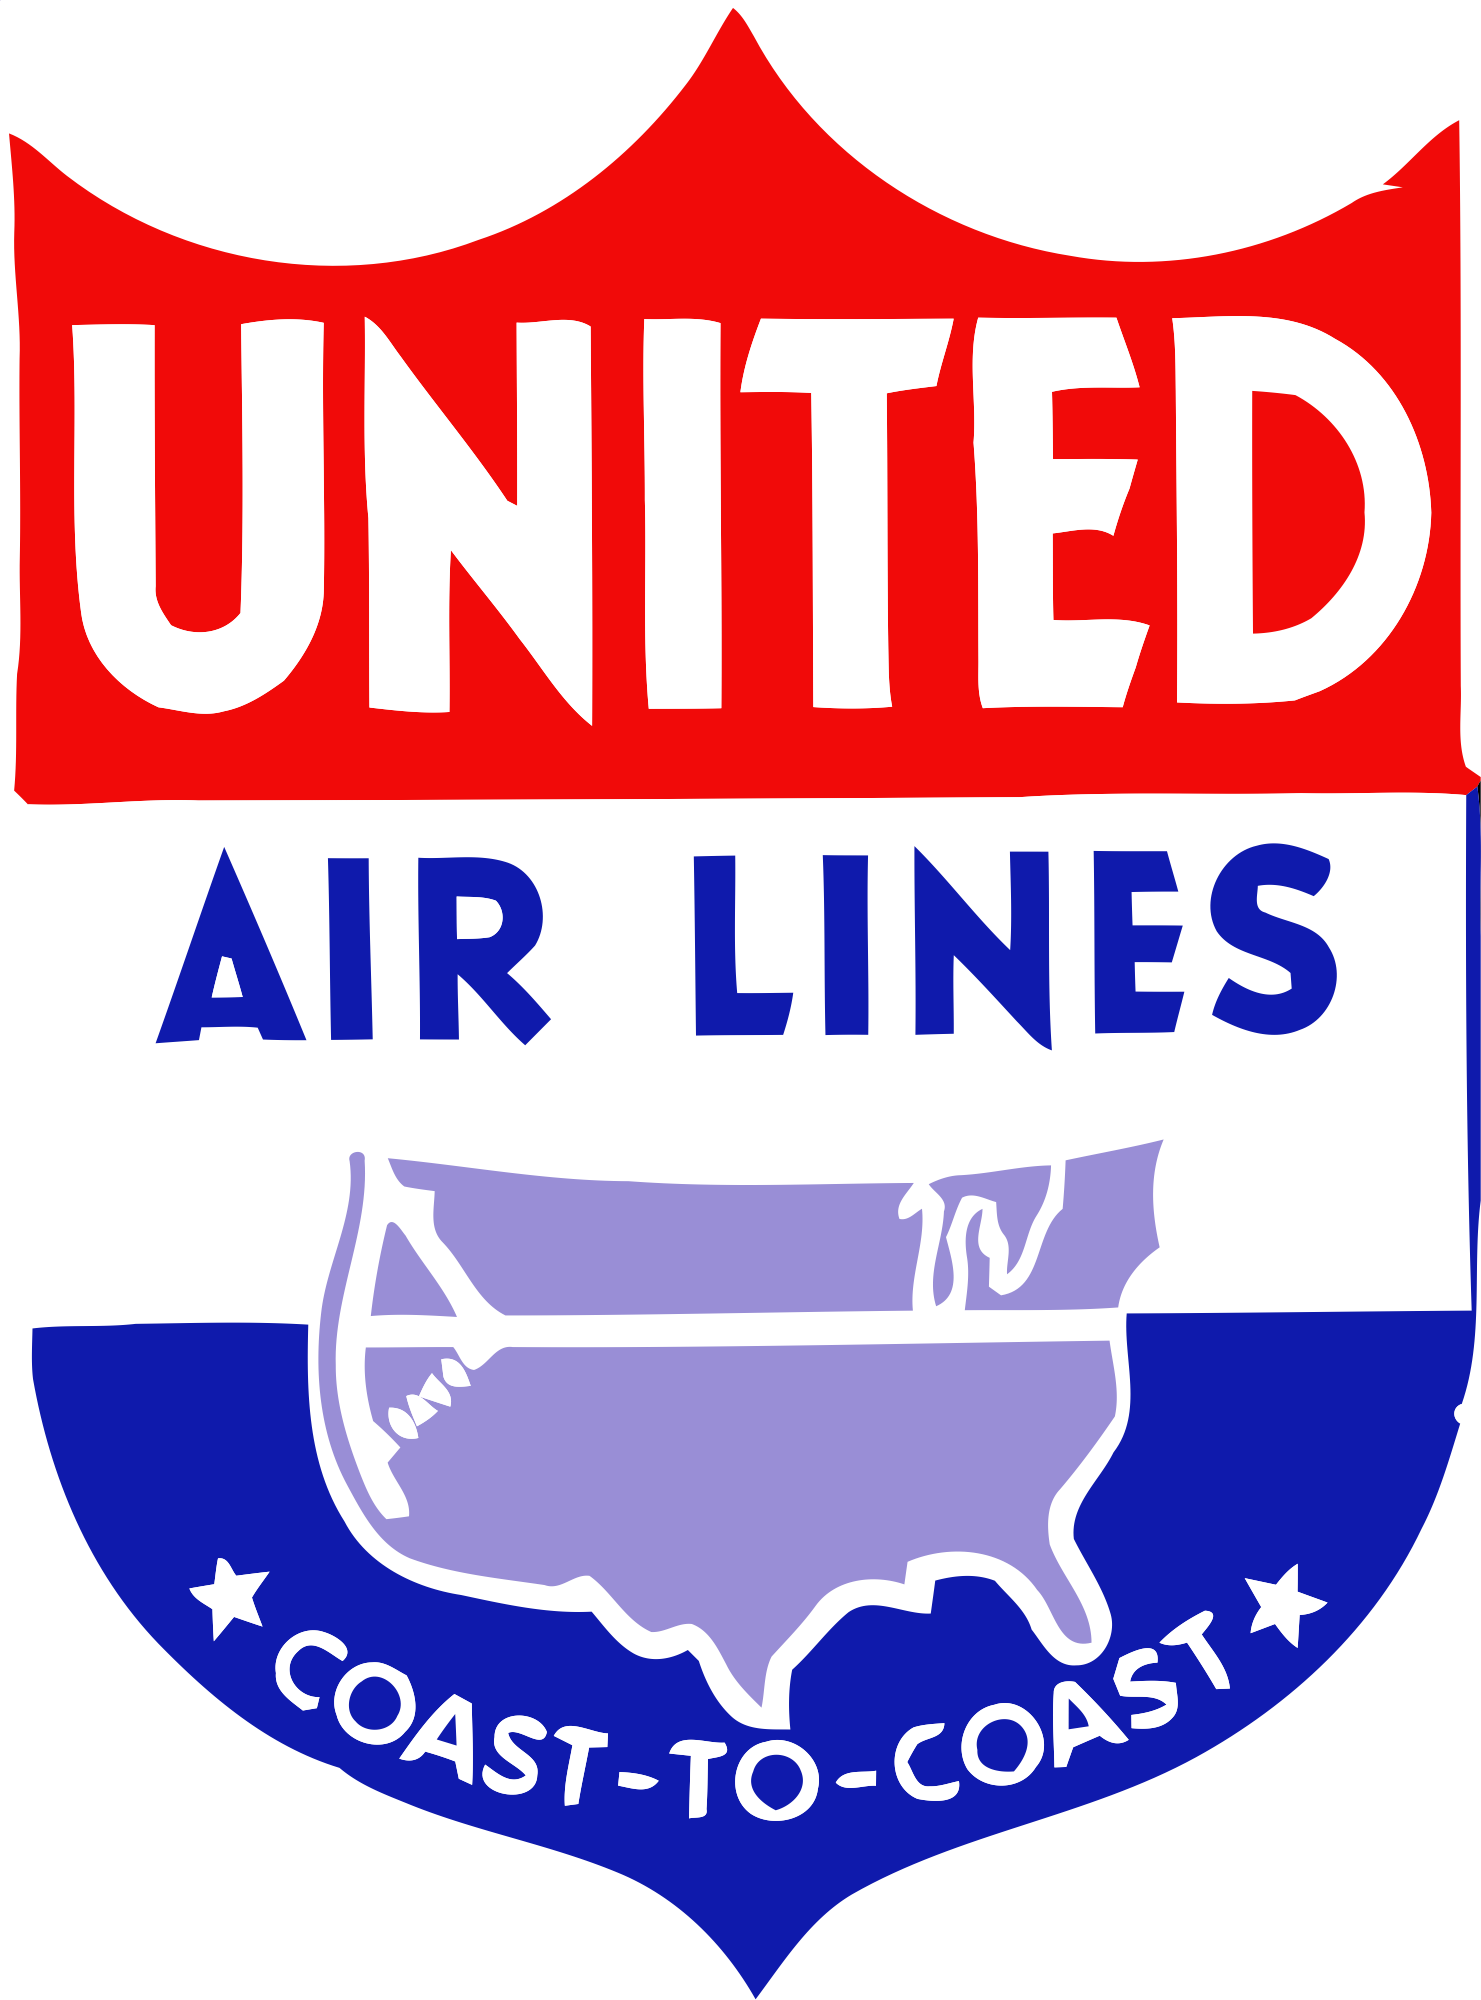 United airlines flight 93 clipart clipart transparent library United Airlines | Logopedia | FANDOM powered by Wikia clipart transparent library